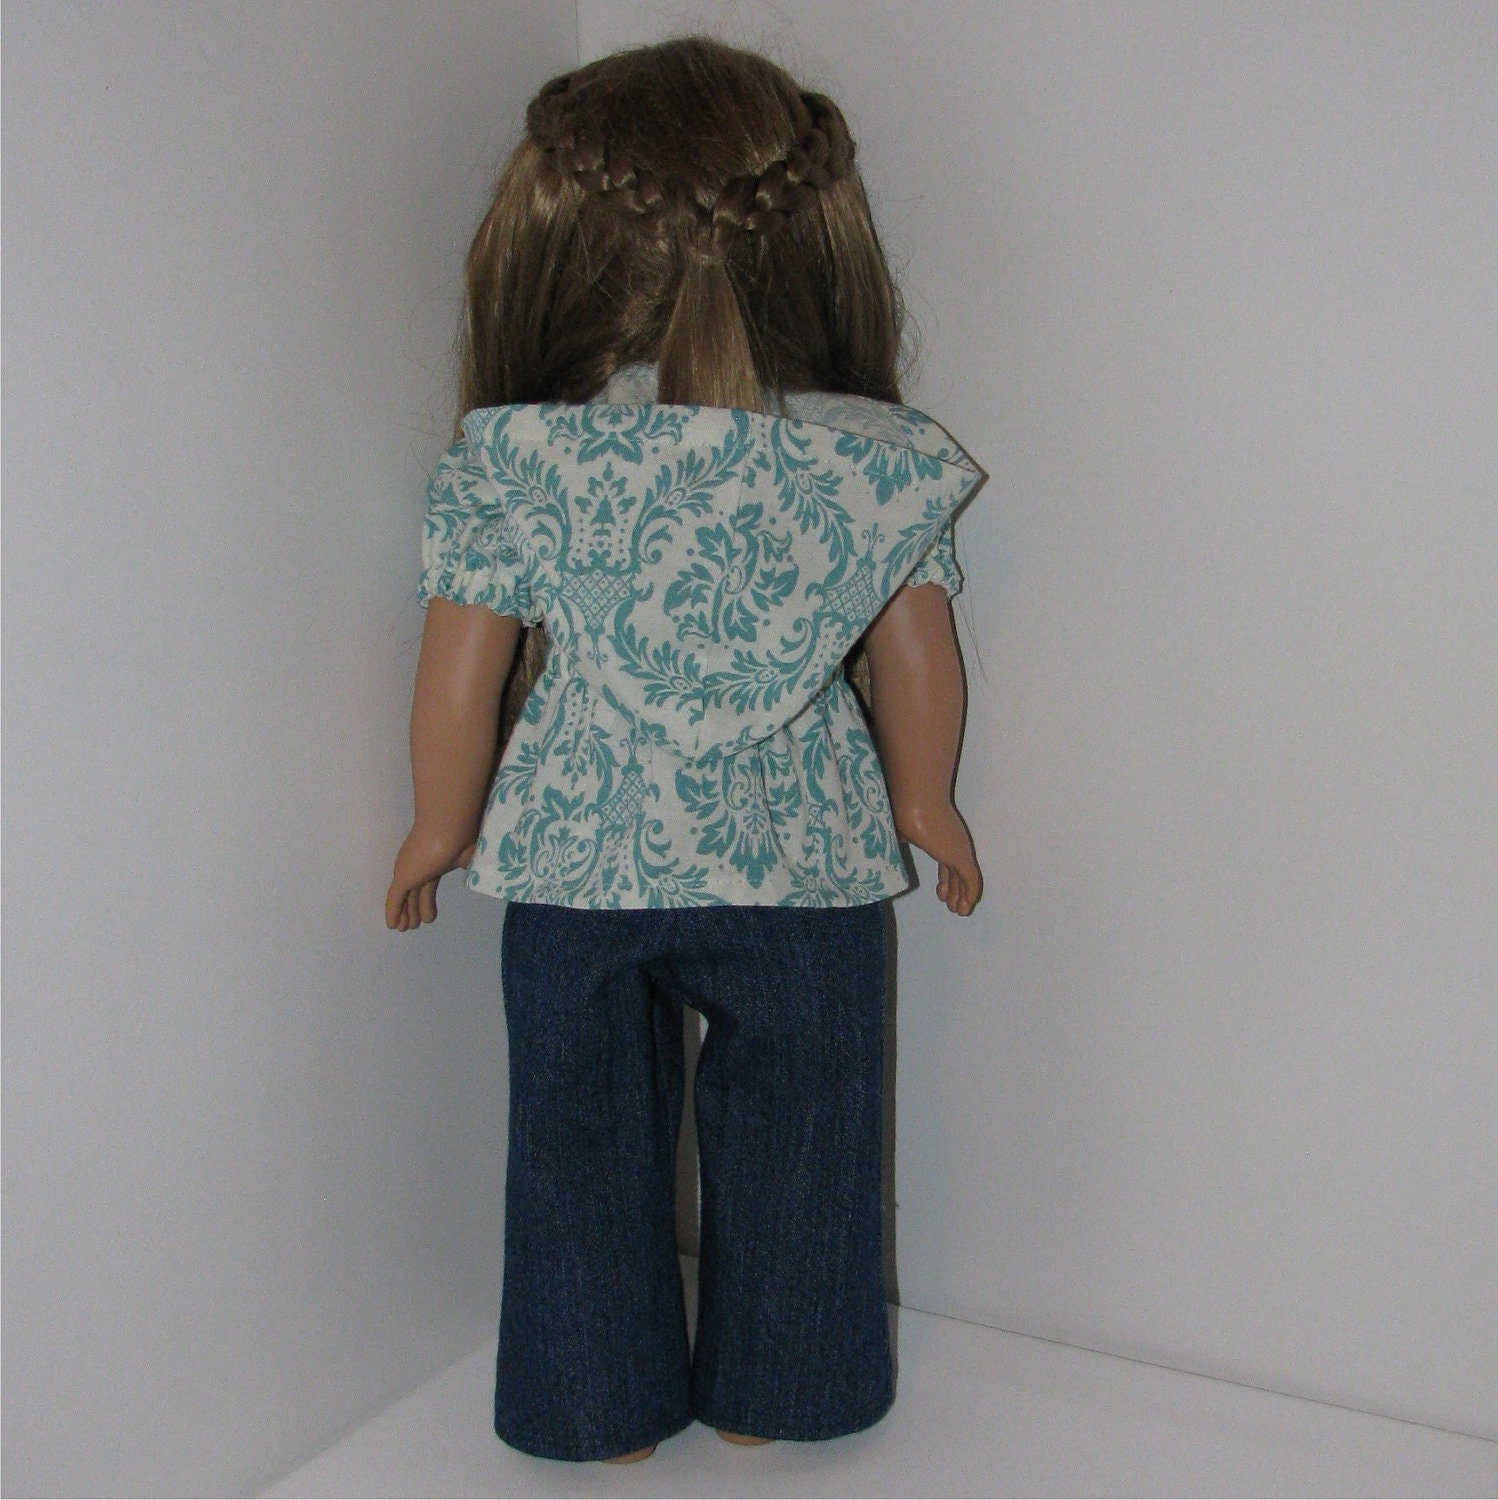 Jeans and Teal Damask Hooded Blouse, Fits American Girl and 18 Inch Dolls